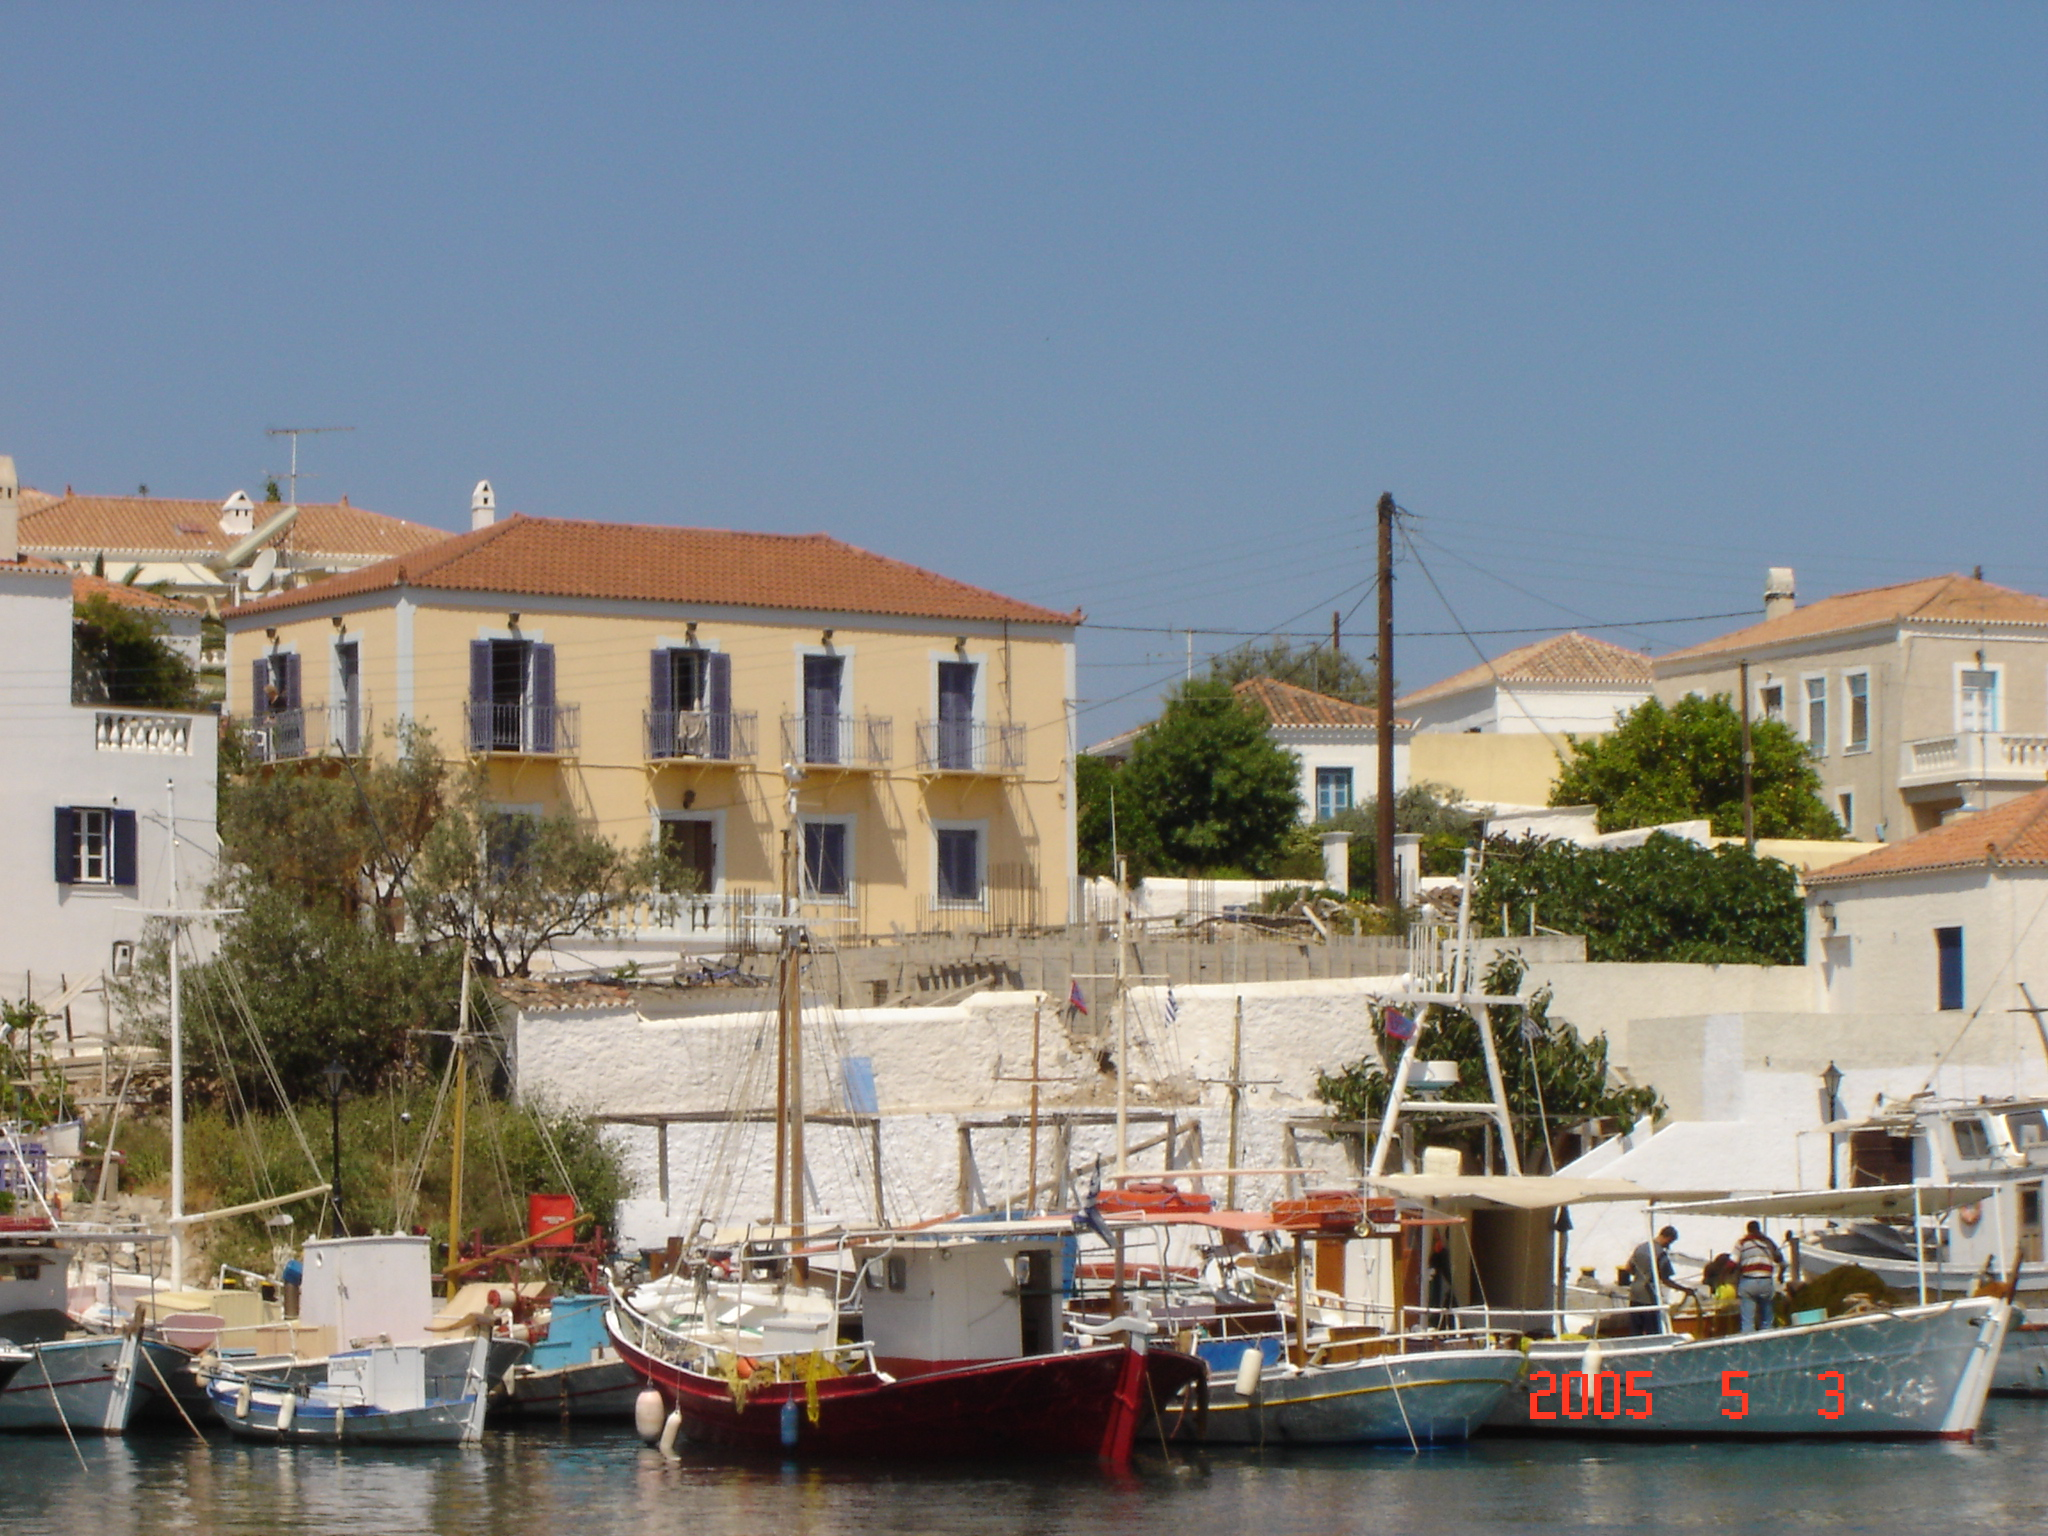 ΣΠΕΤΣΕΣ: OLD HARBOUR APPARTMENTS